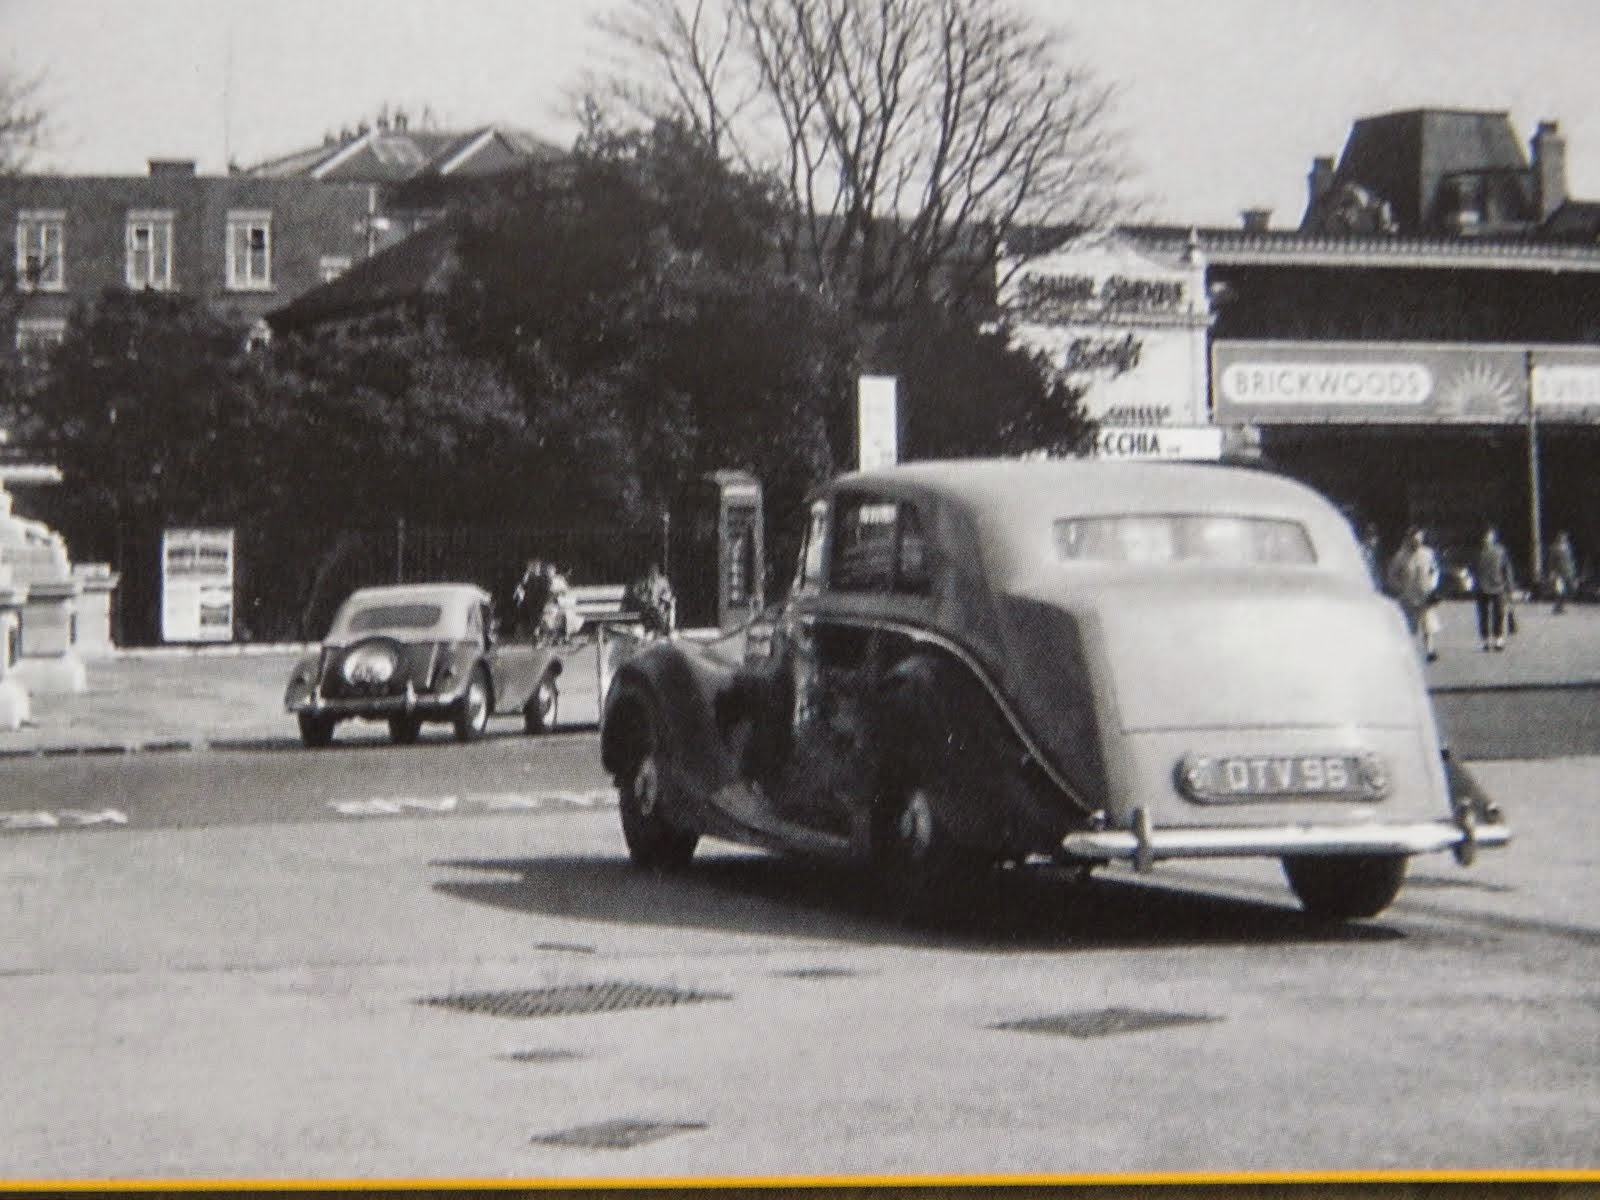 Guildhall Square 1950s